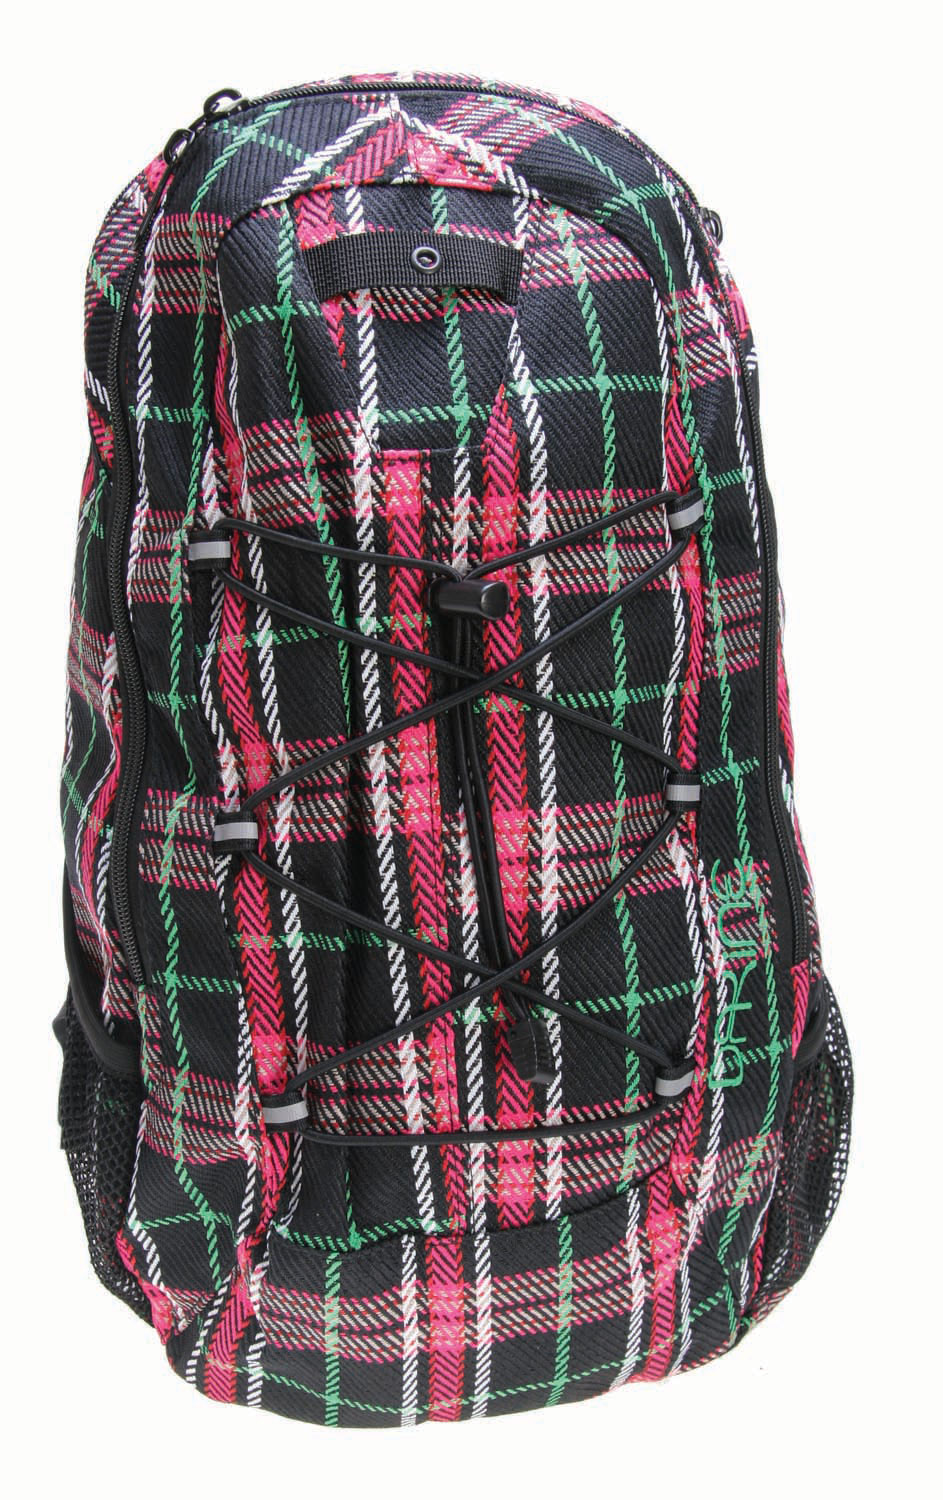 "Entertainment The Dakine Transit Pack brings together the function and style that every girl is looking for. This is a medium sized obag that's great for carrying school books or your gear. You have pockets for your sunglasses and water bottles, a bungee strap for that extra layer, and reflective webbing for after dark. With the quality and features that the Dakine Transit Pack offers it's no surprise that this is the bag of choice.Key Features of The Dakine Transit Pack: 1100 cu in [18L] 18 x 12 x 6"" Zippered Sunglass Pocket Mesh Side Pocket Reflective Webbing Bungee Storage - $17.95"